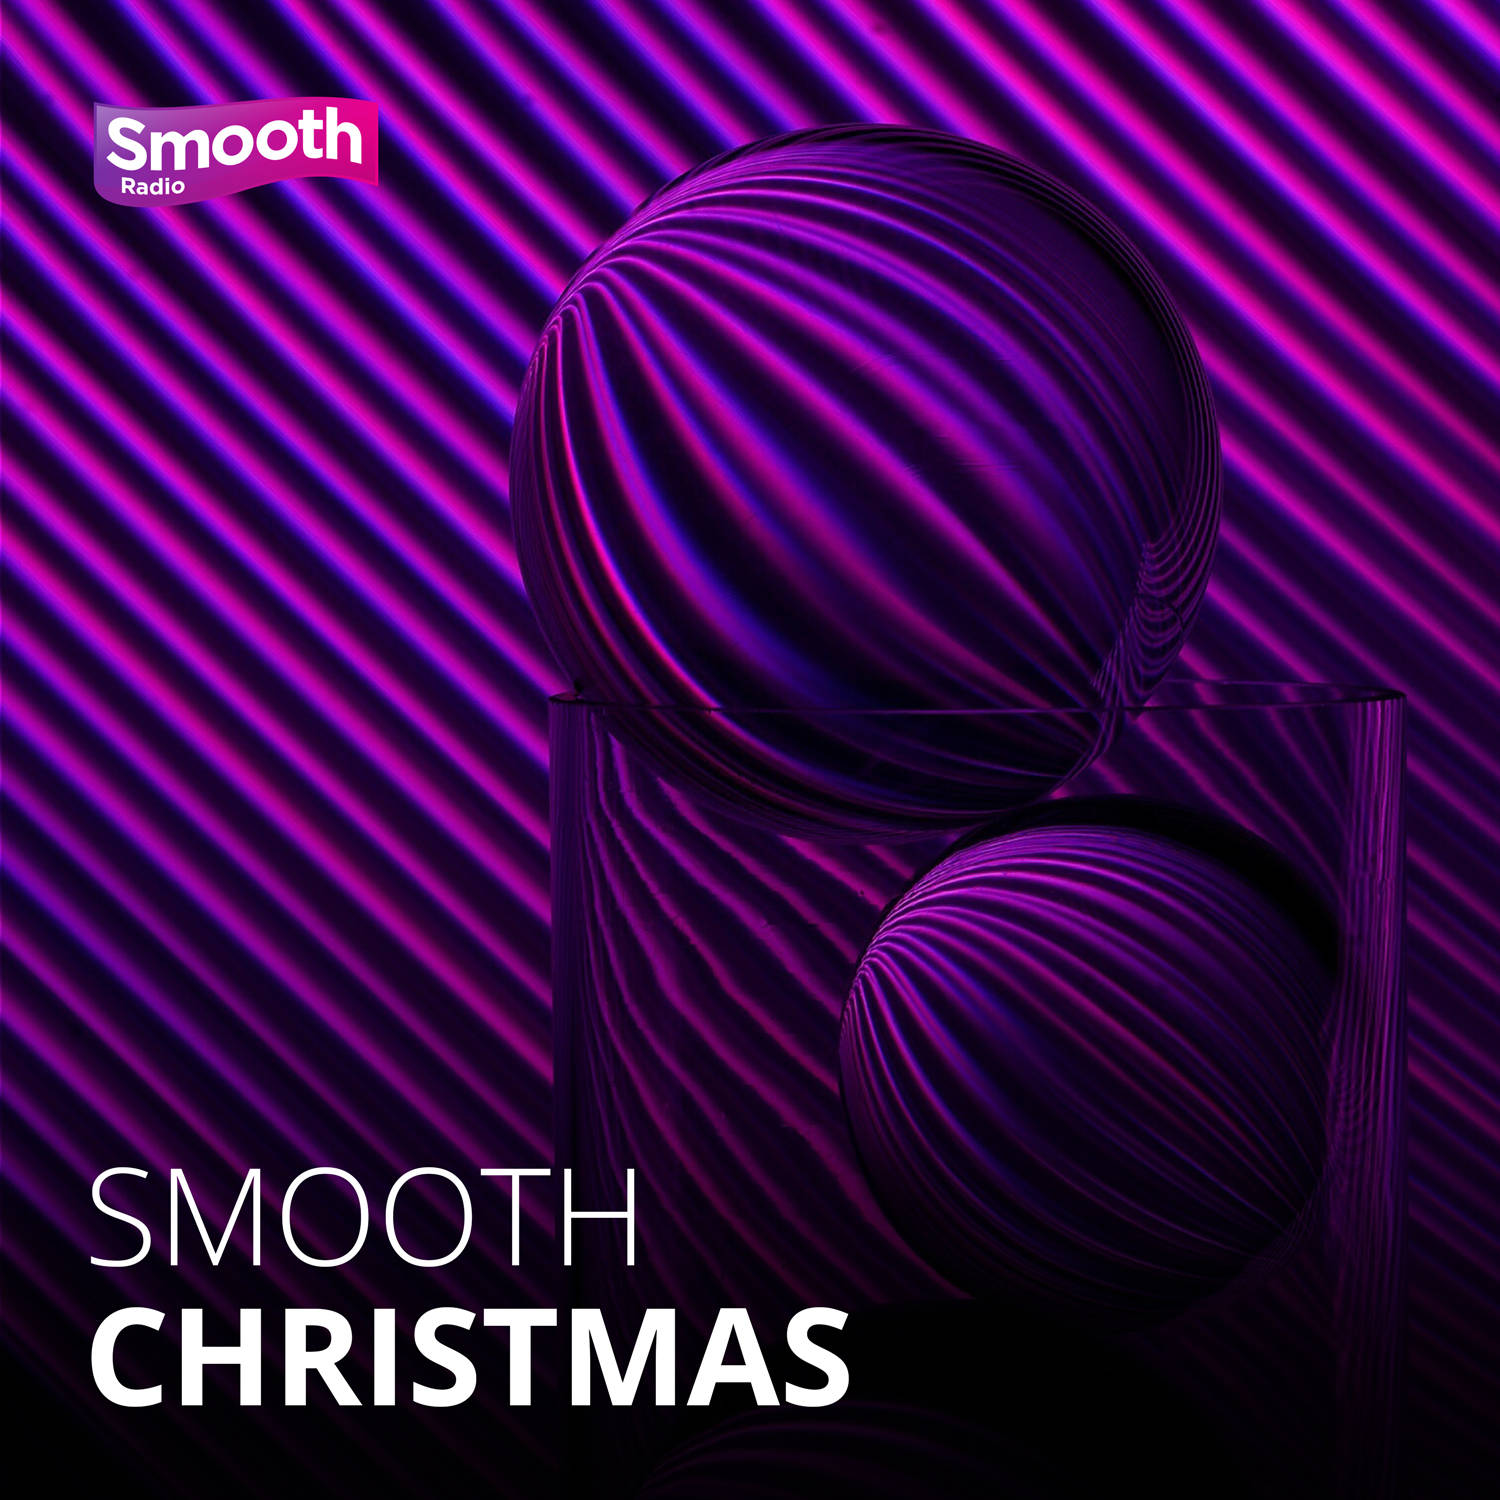 Smooth Christmas image